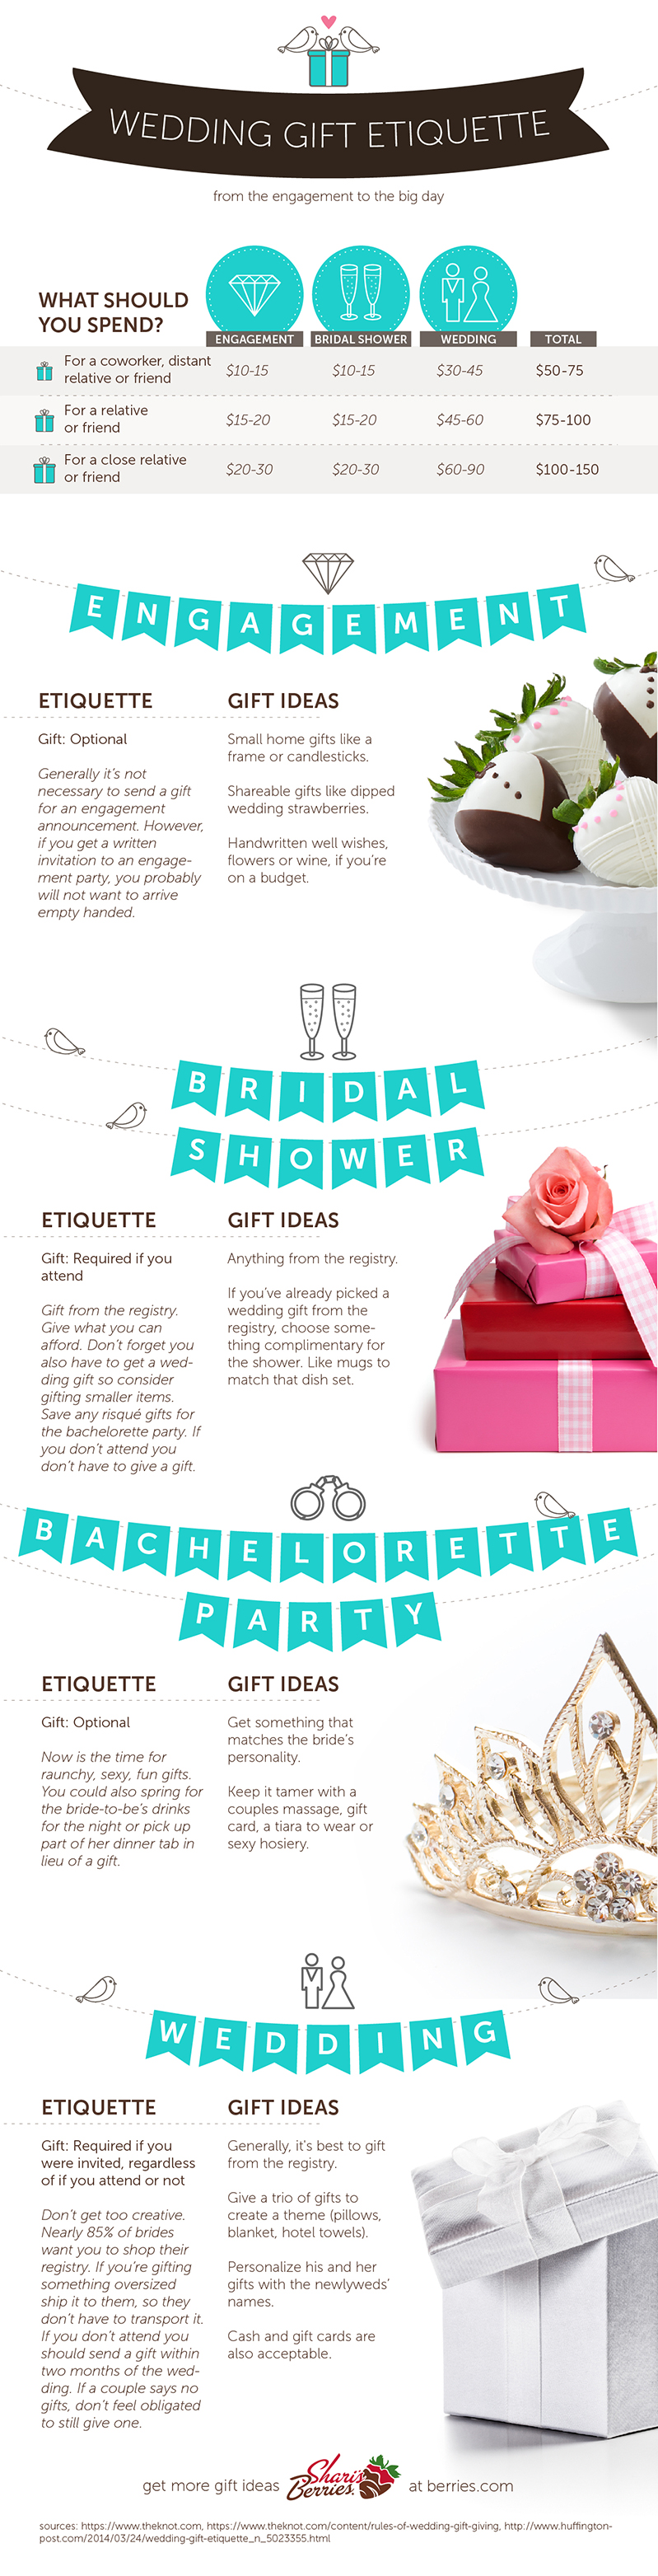 Wedding Gift Guide and Etiquette